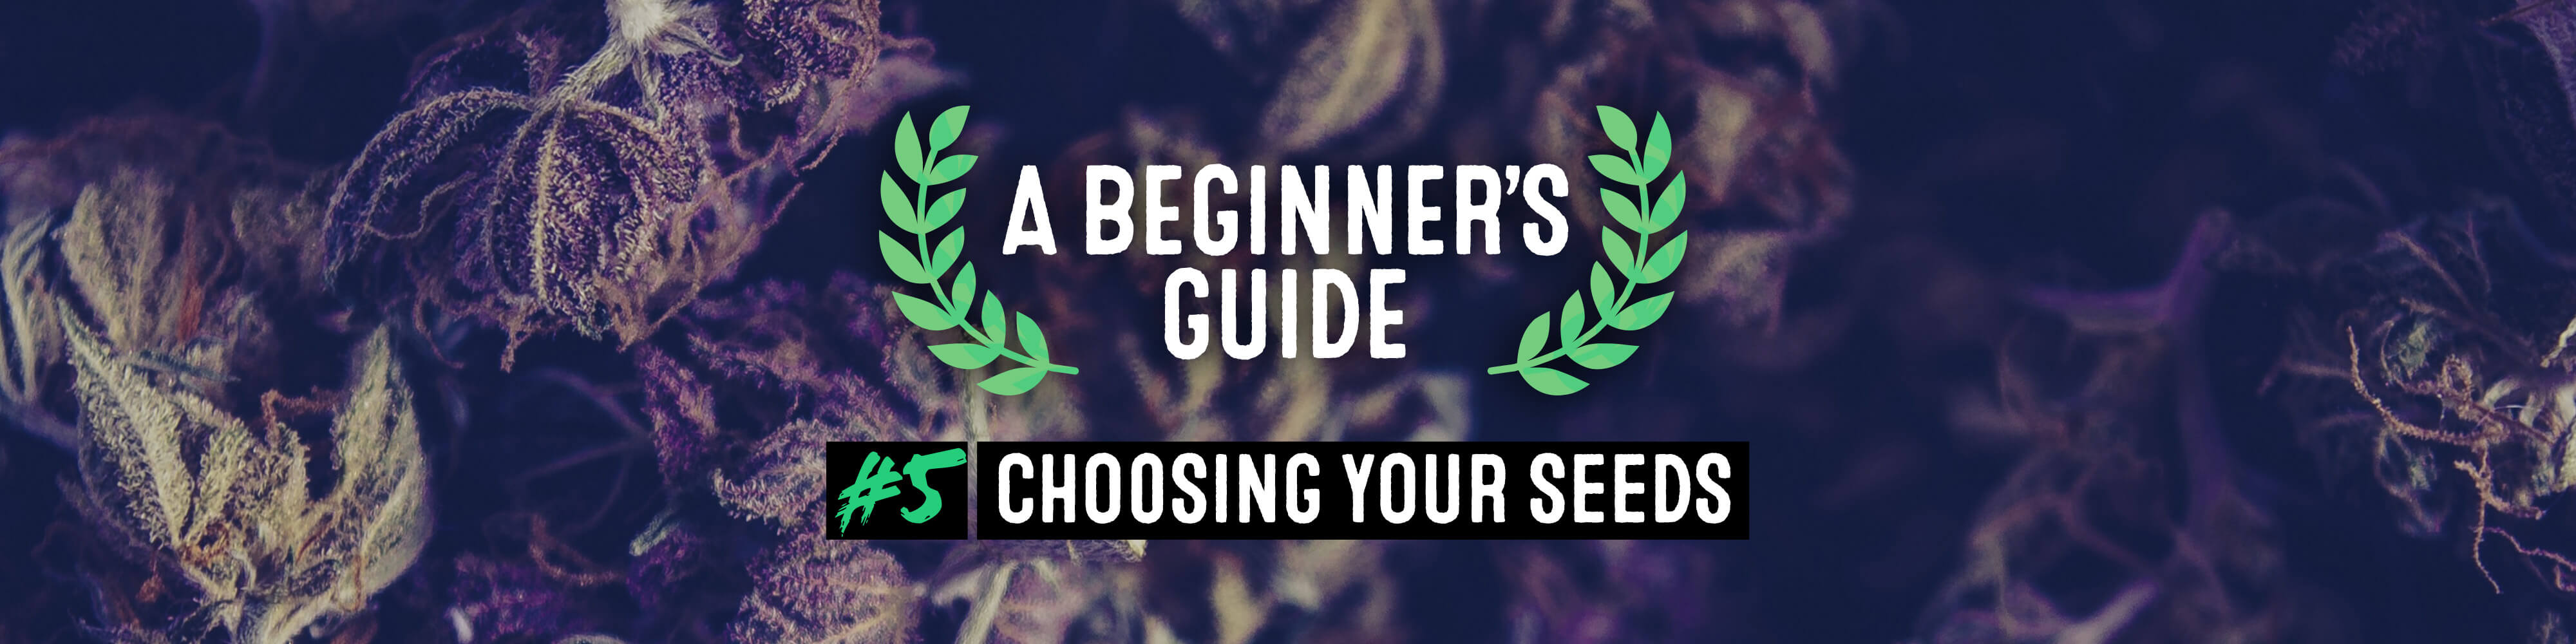 Choosing your seeds